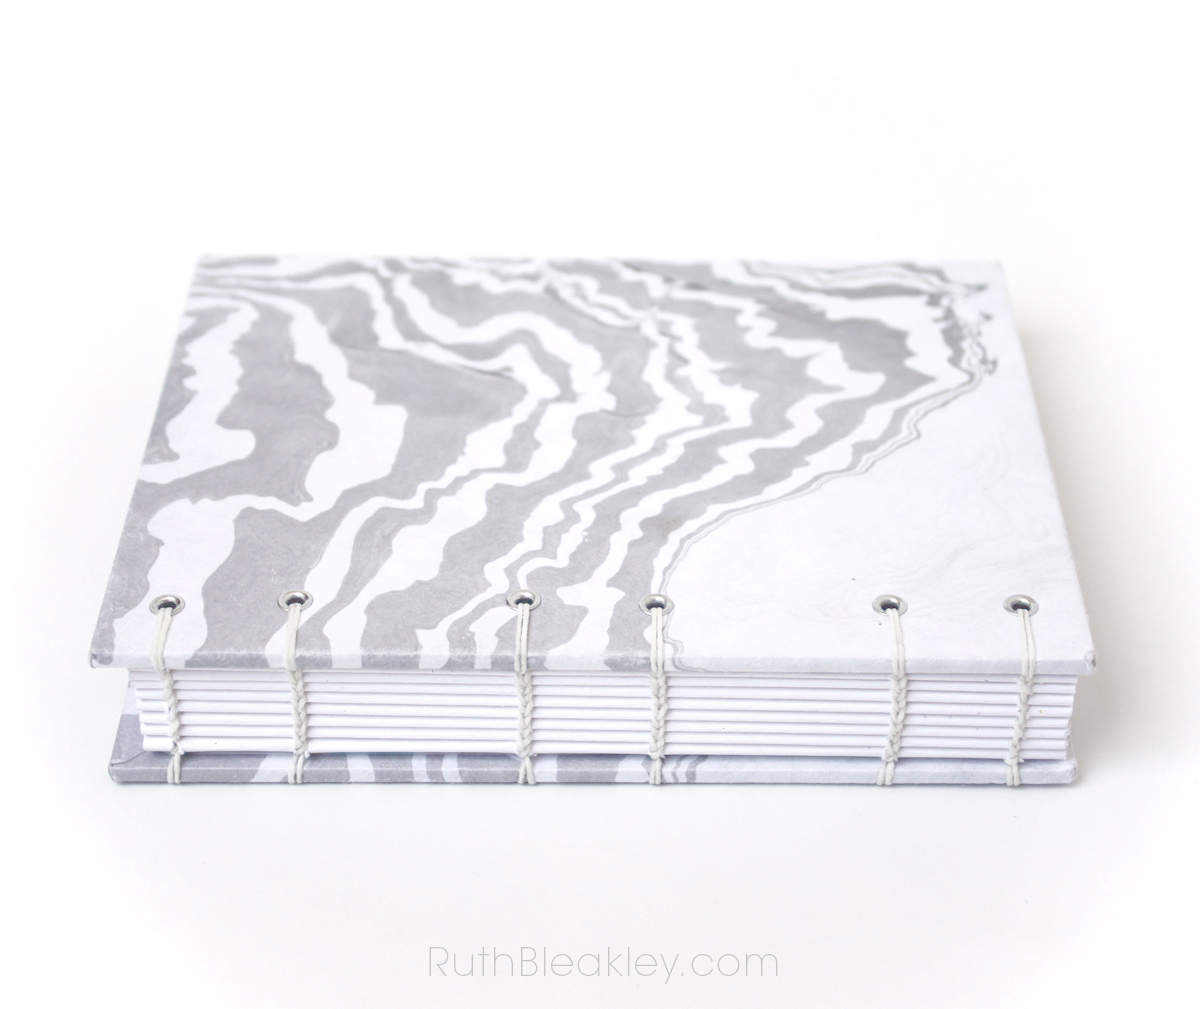 Travel Journal with Marbled Paper that lays flat for writing Handmade by Ruth Bleakley - 4